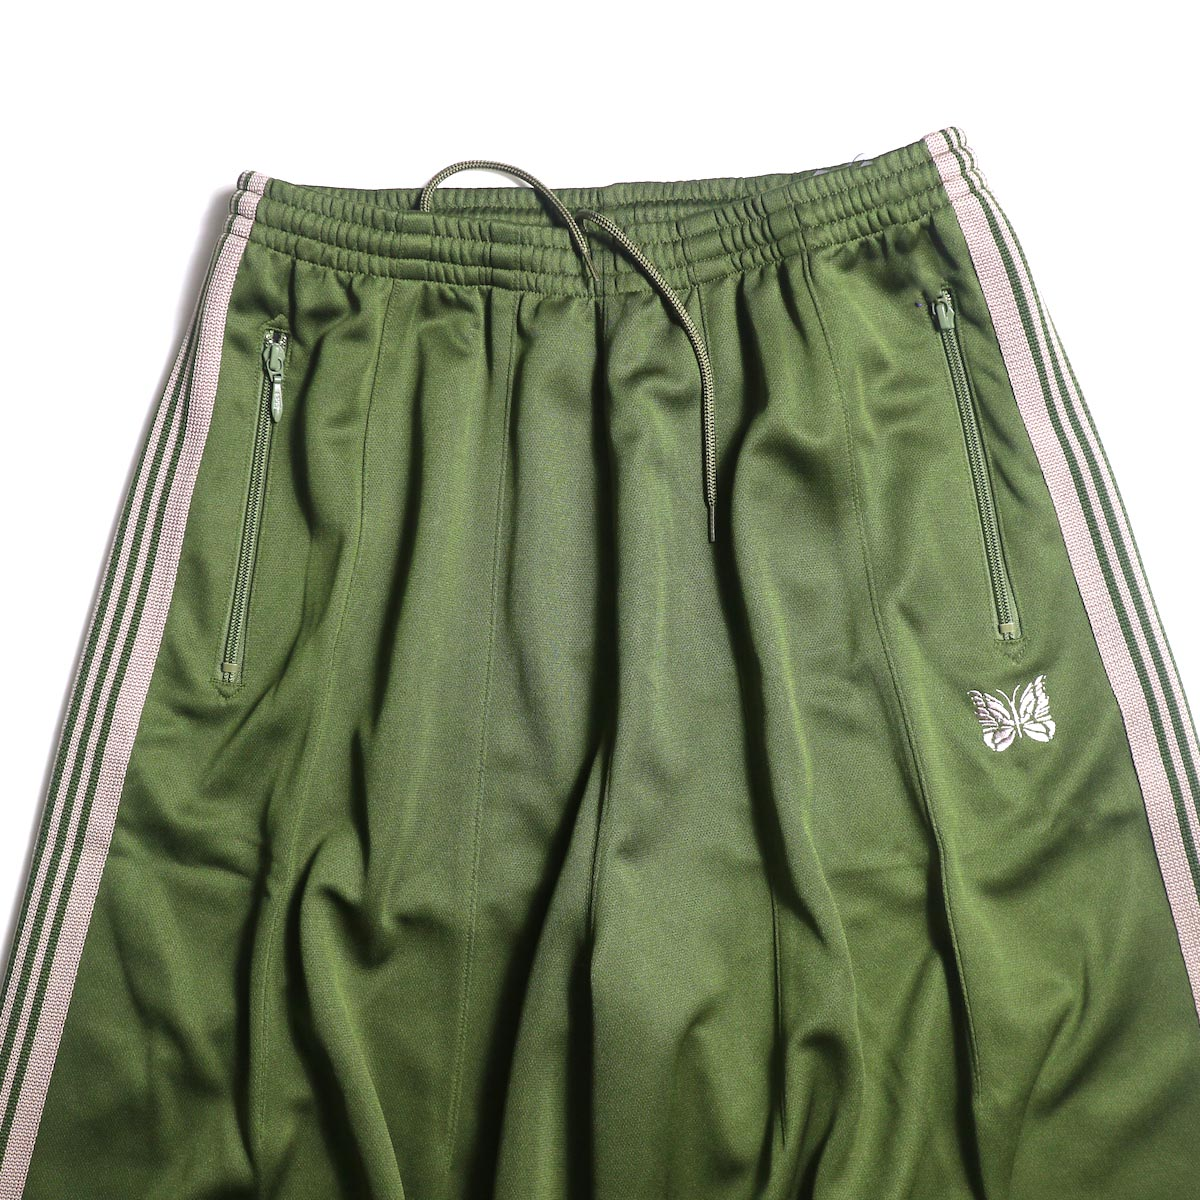 Needles / H.D. TRACK PANT - POLY SMOOTH (Olive)ウエスト